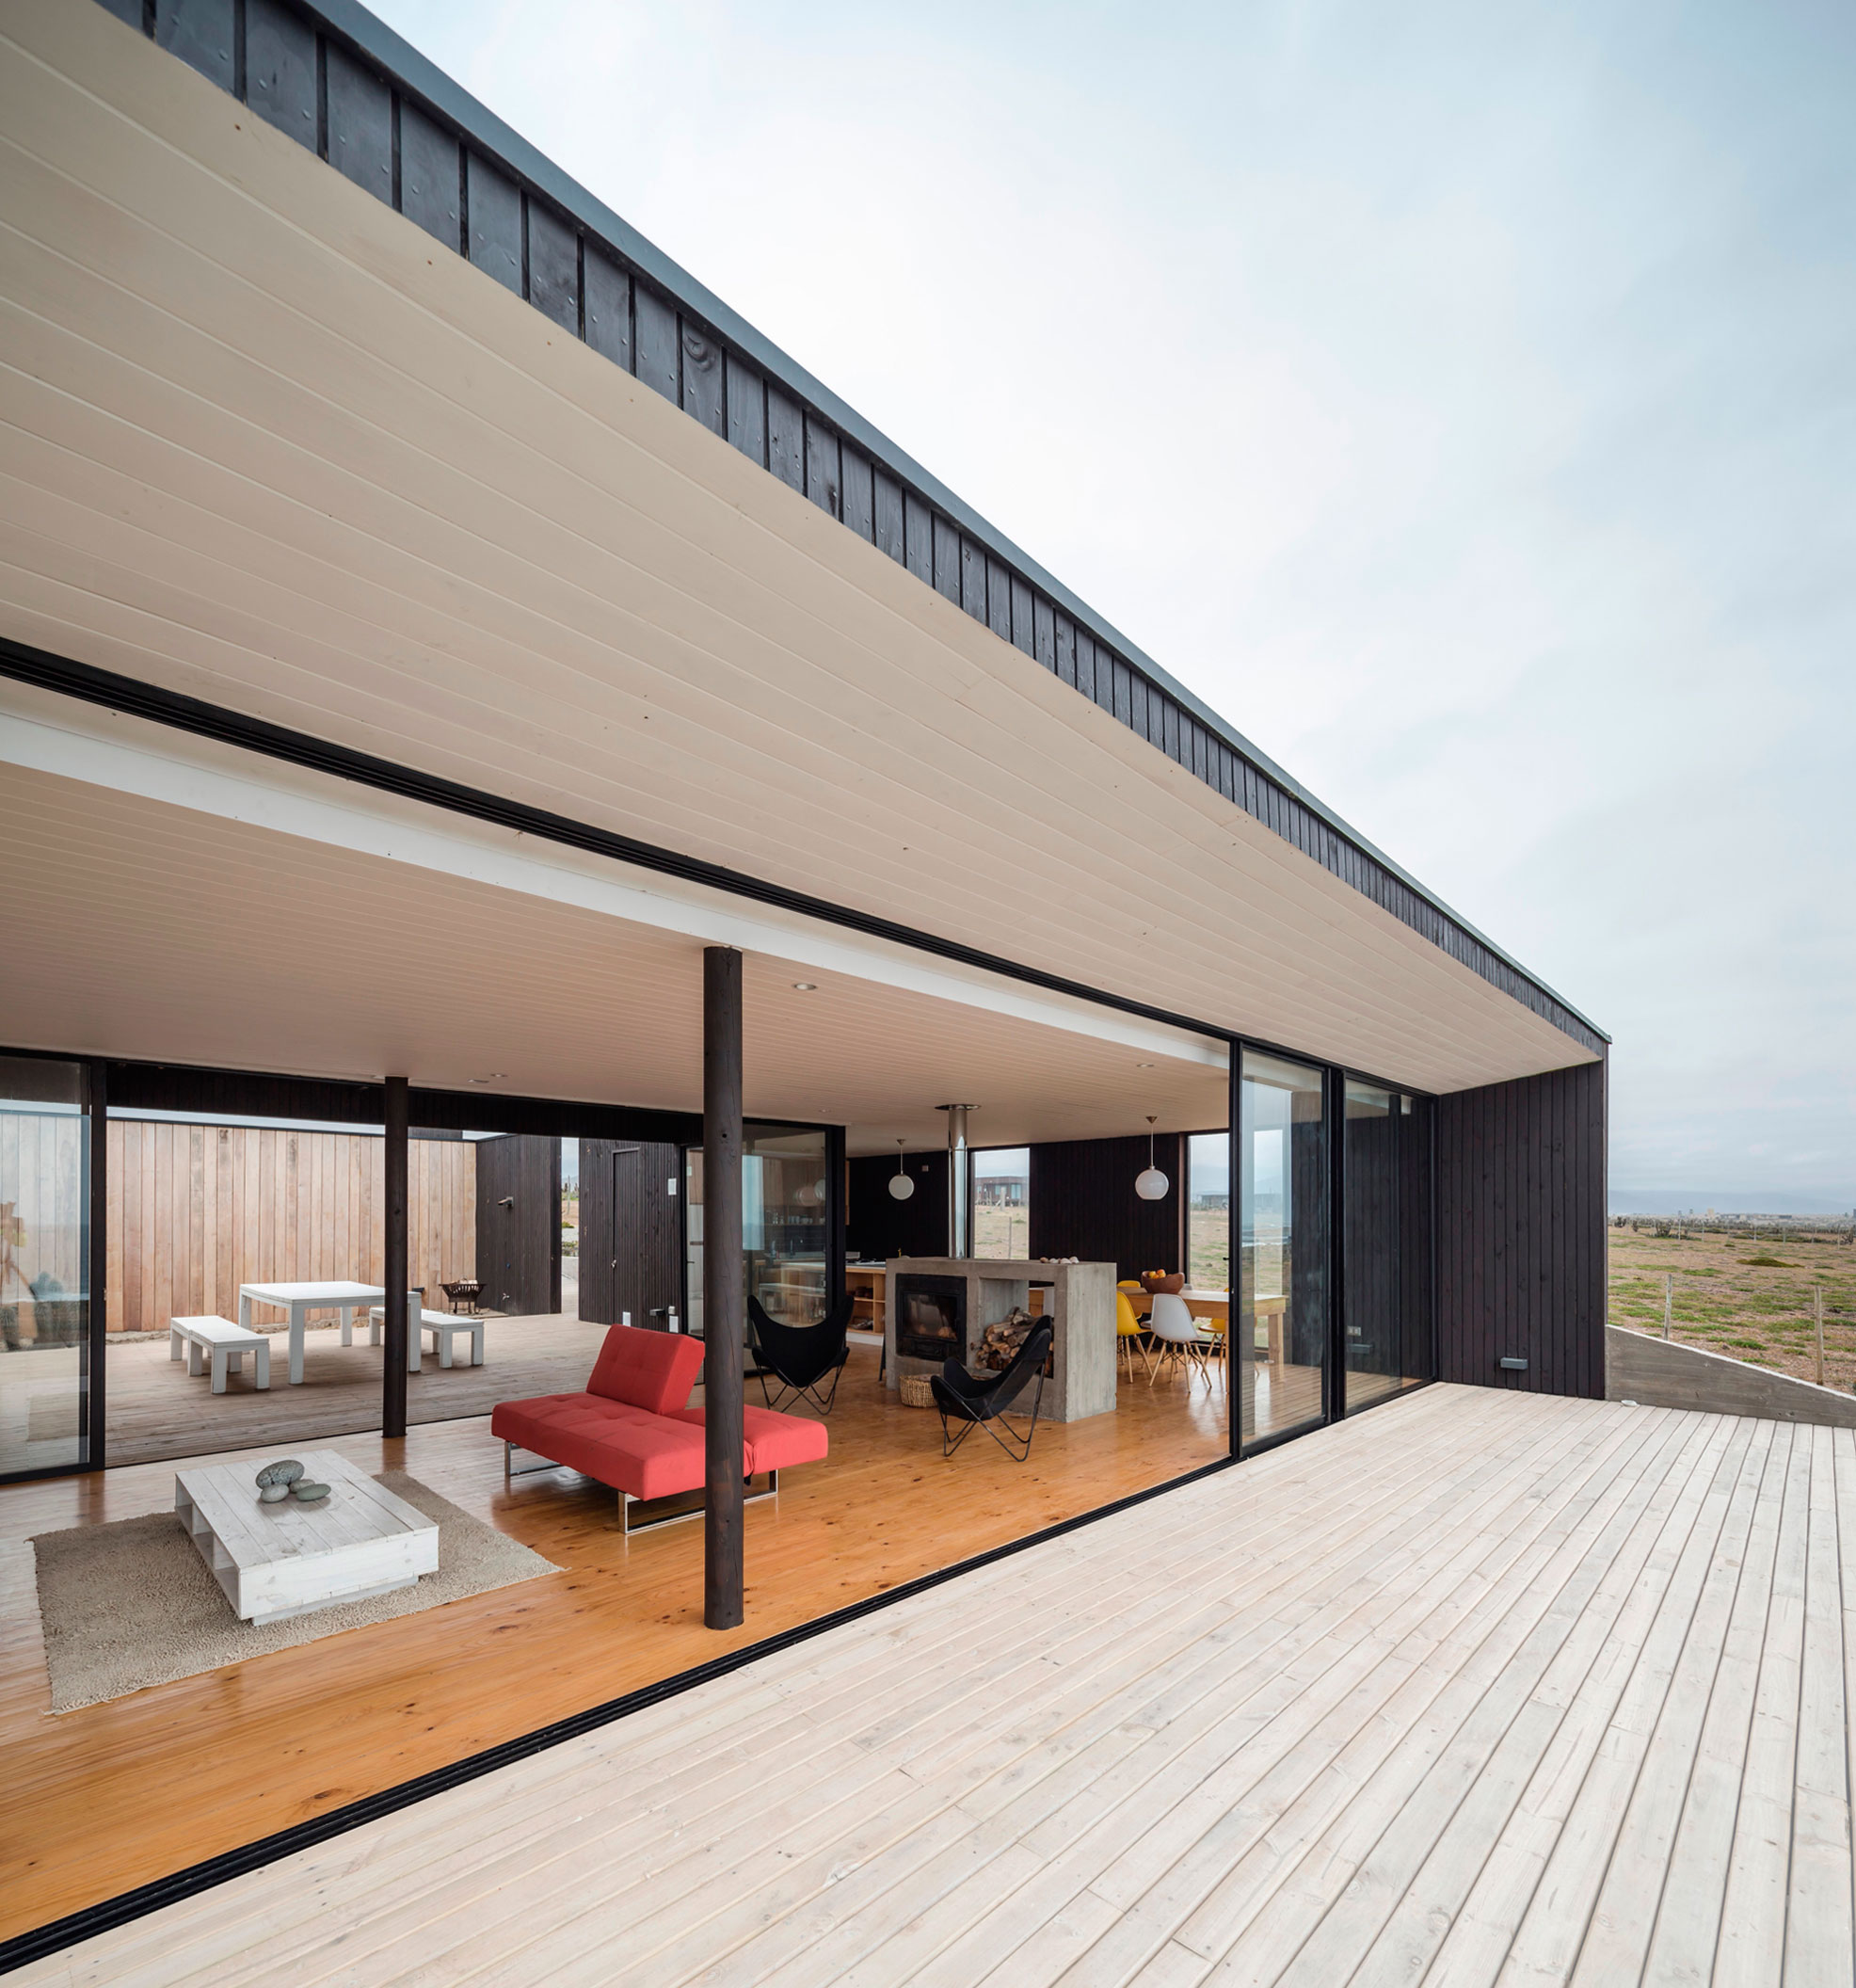 A Private Residence in Huentaleuquen, Chile by nüform